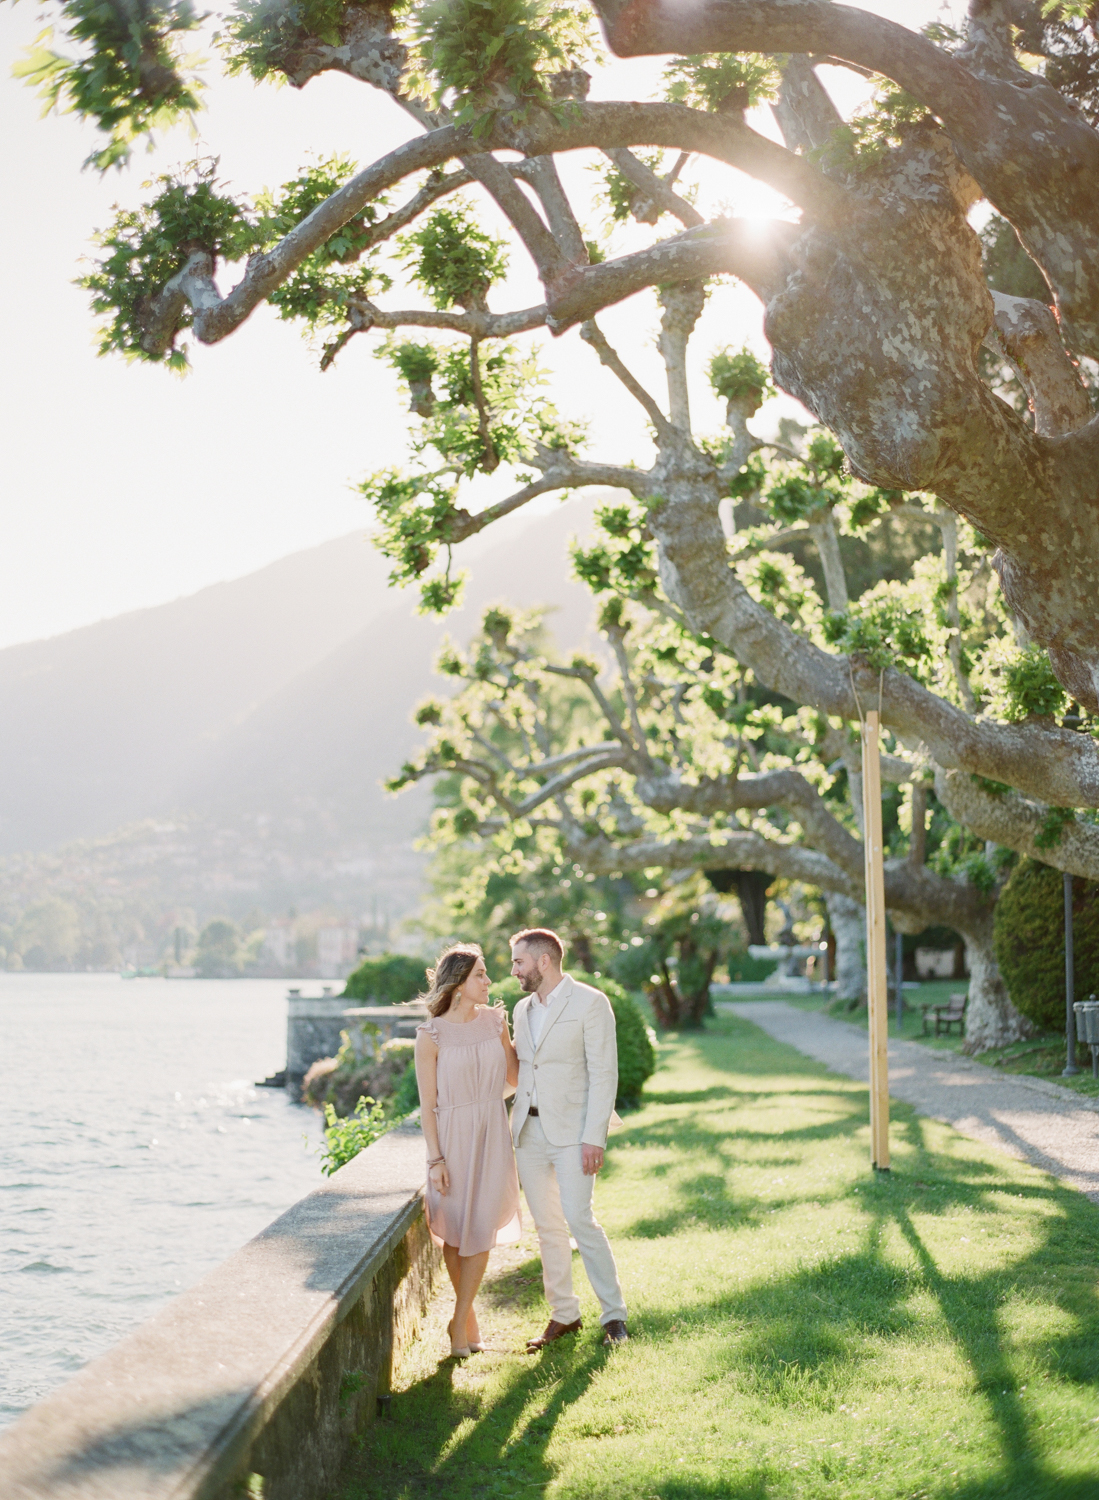 Lake_Como_wedding_photographer_nikol_bodnarova_lake_como_film_wedding_photographer_30.JPG